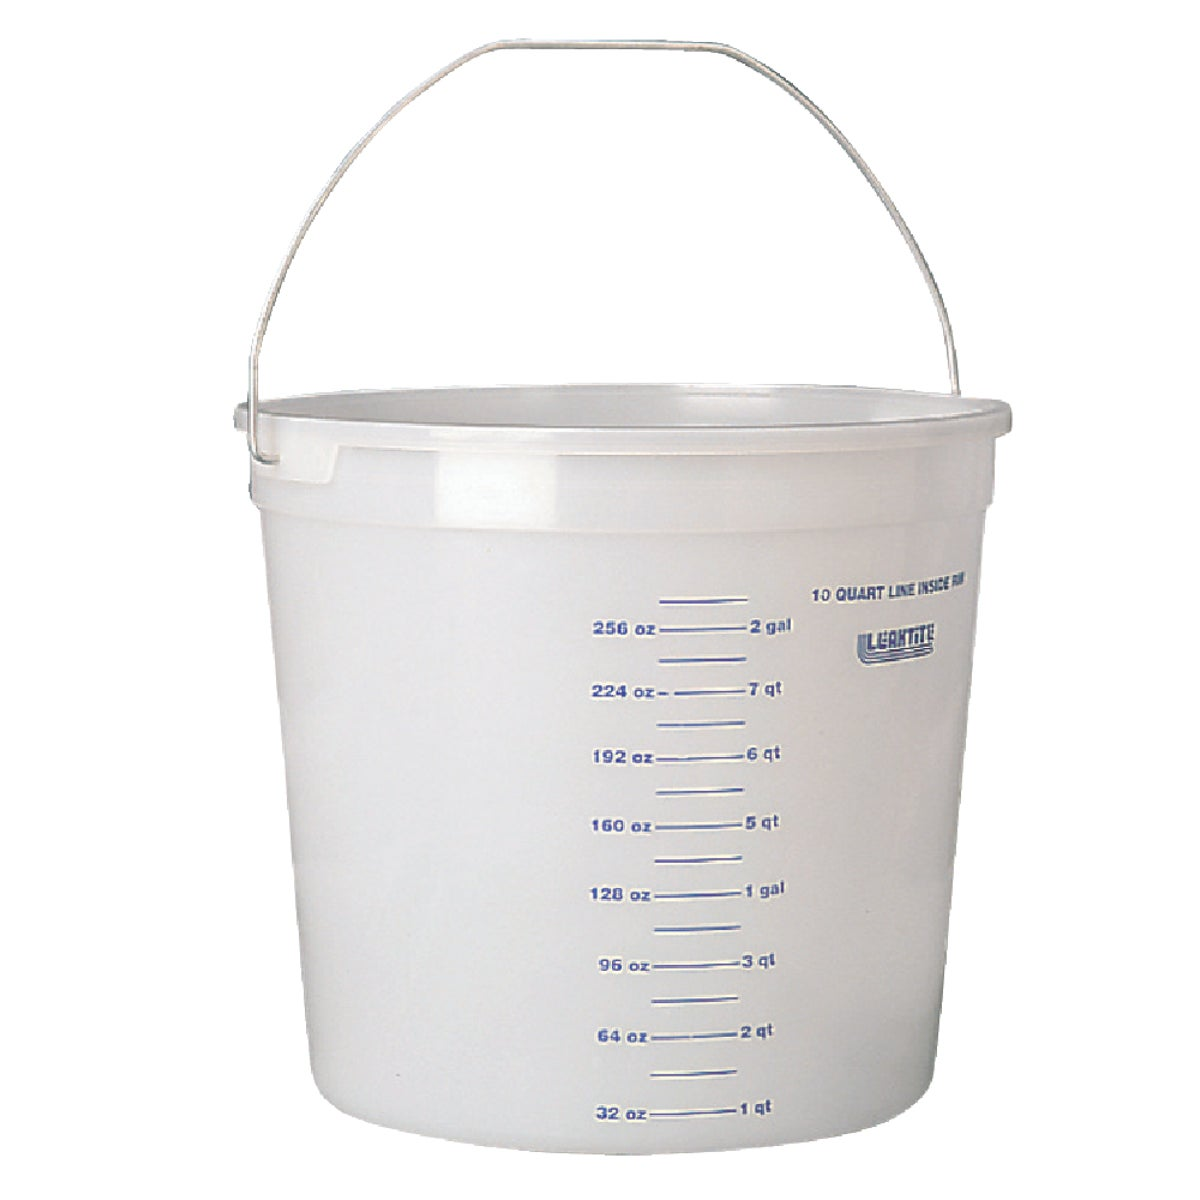 10QT CLEAR PLASTIC PAIL - 11CLR by Leaktite Corporation